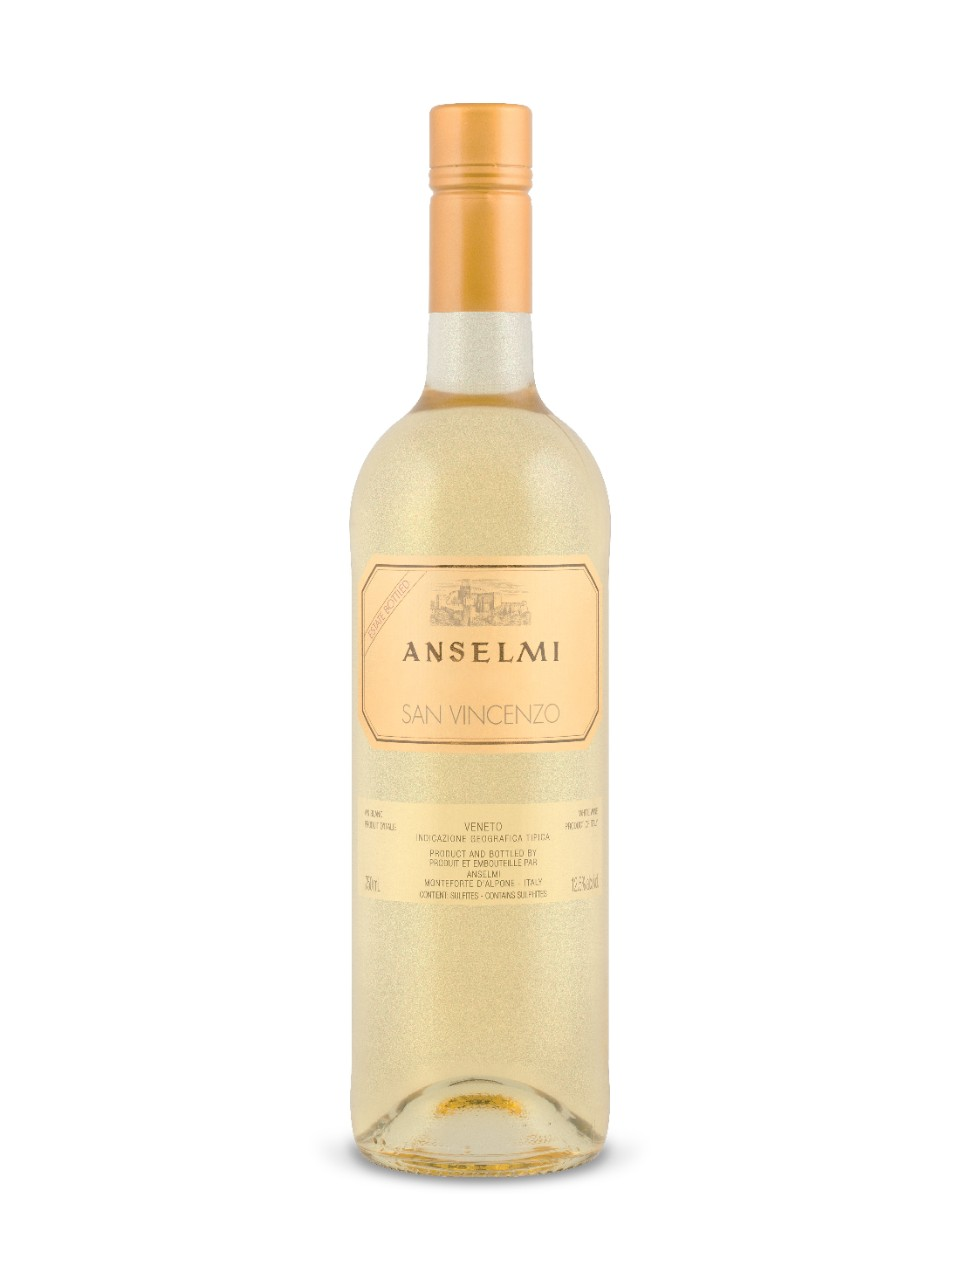 Anselmi San Vincenzo from LCBO